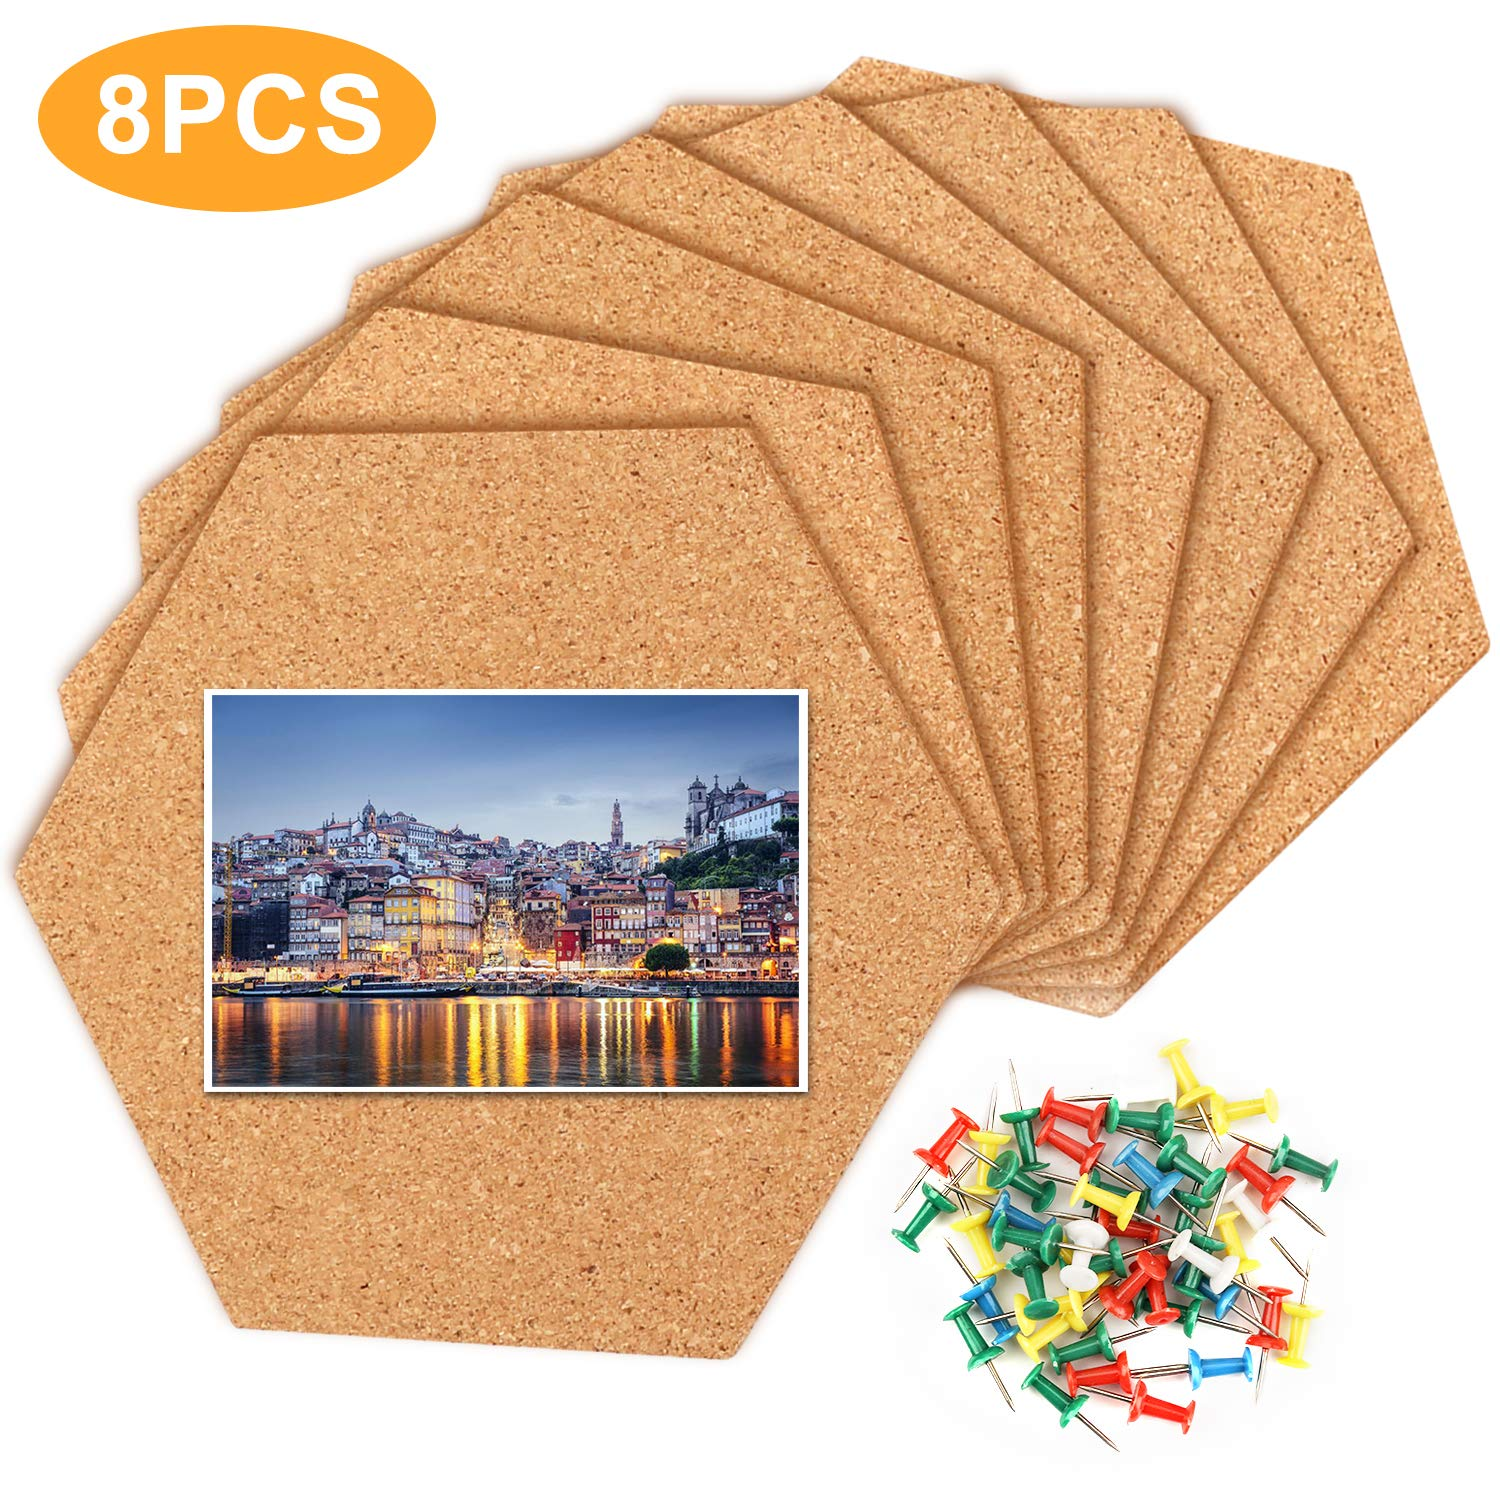 8 Pack Cork Board Tiles Hexagon Cork Tiles Self Adhesive With 90 Pcs